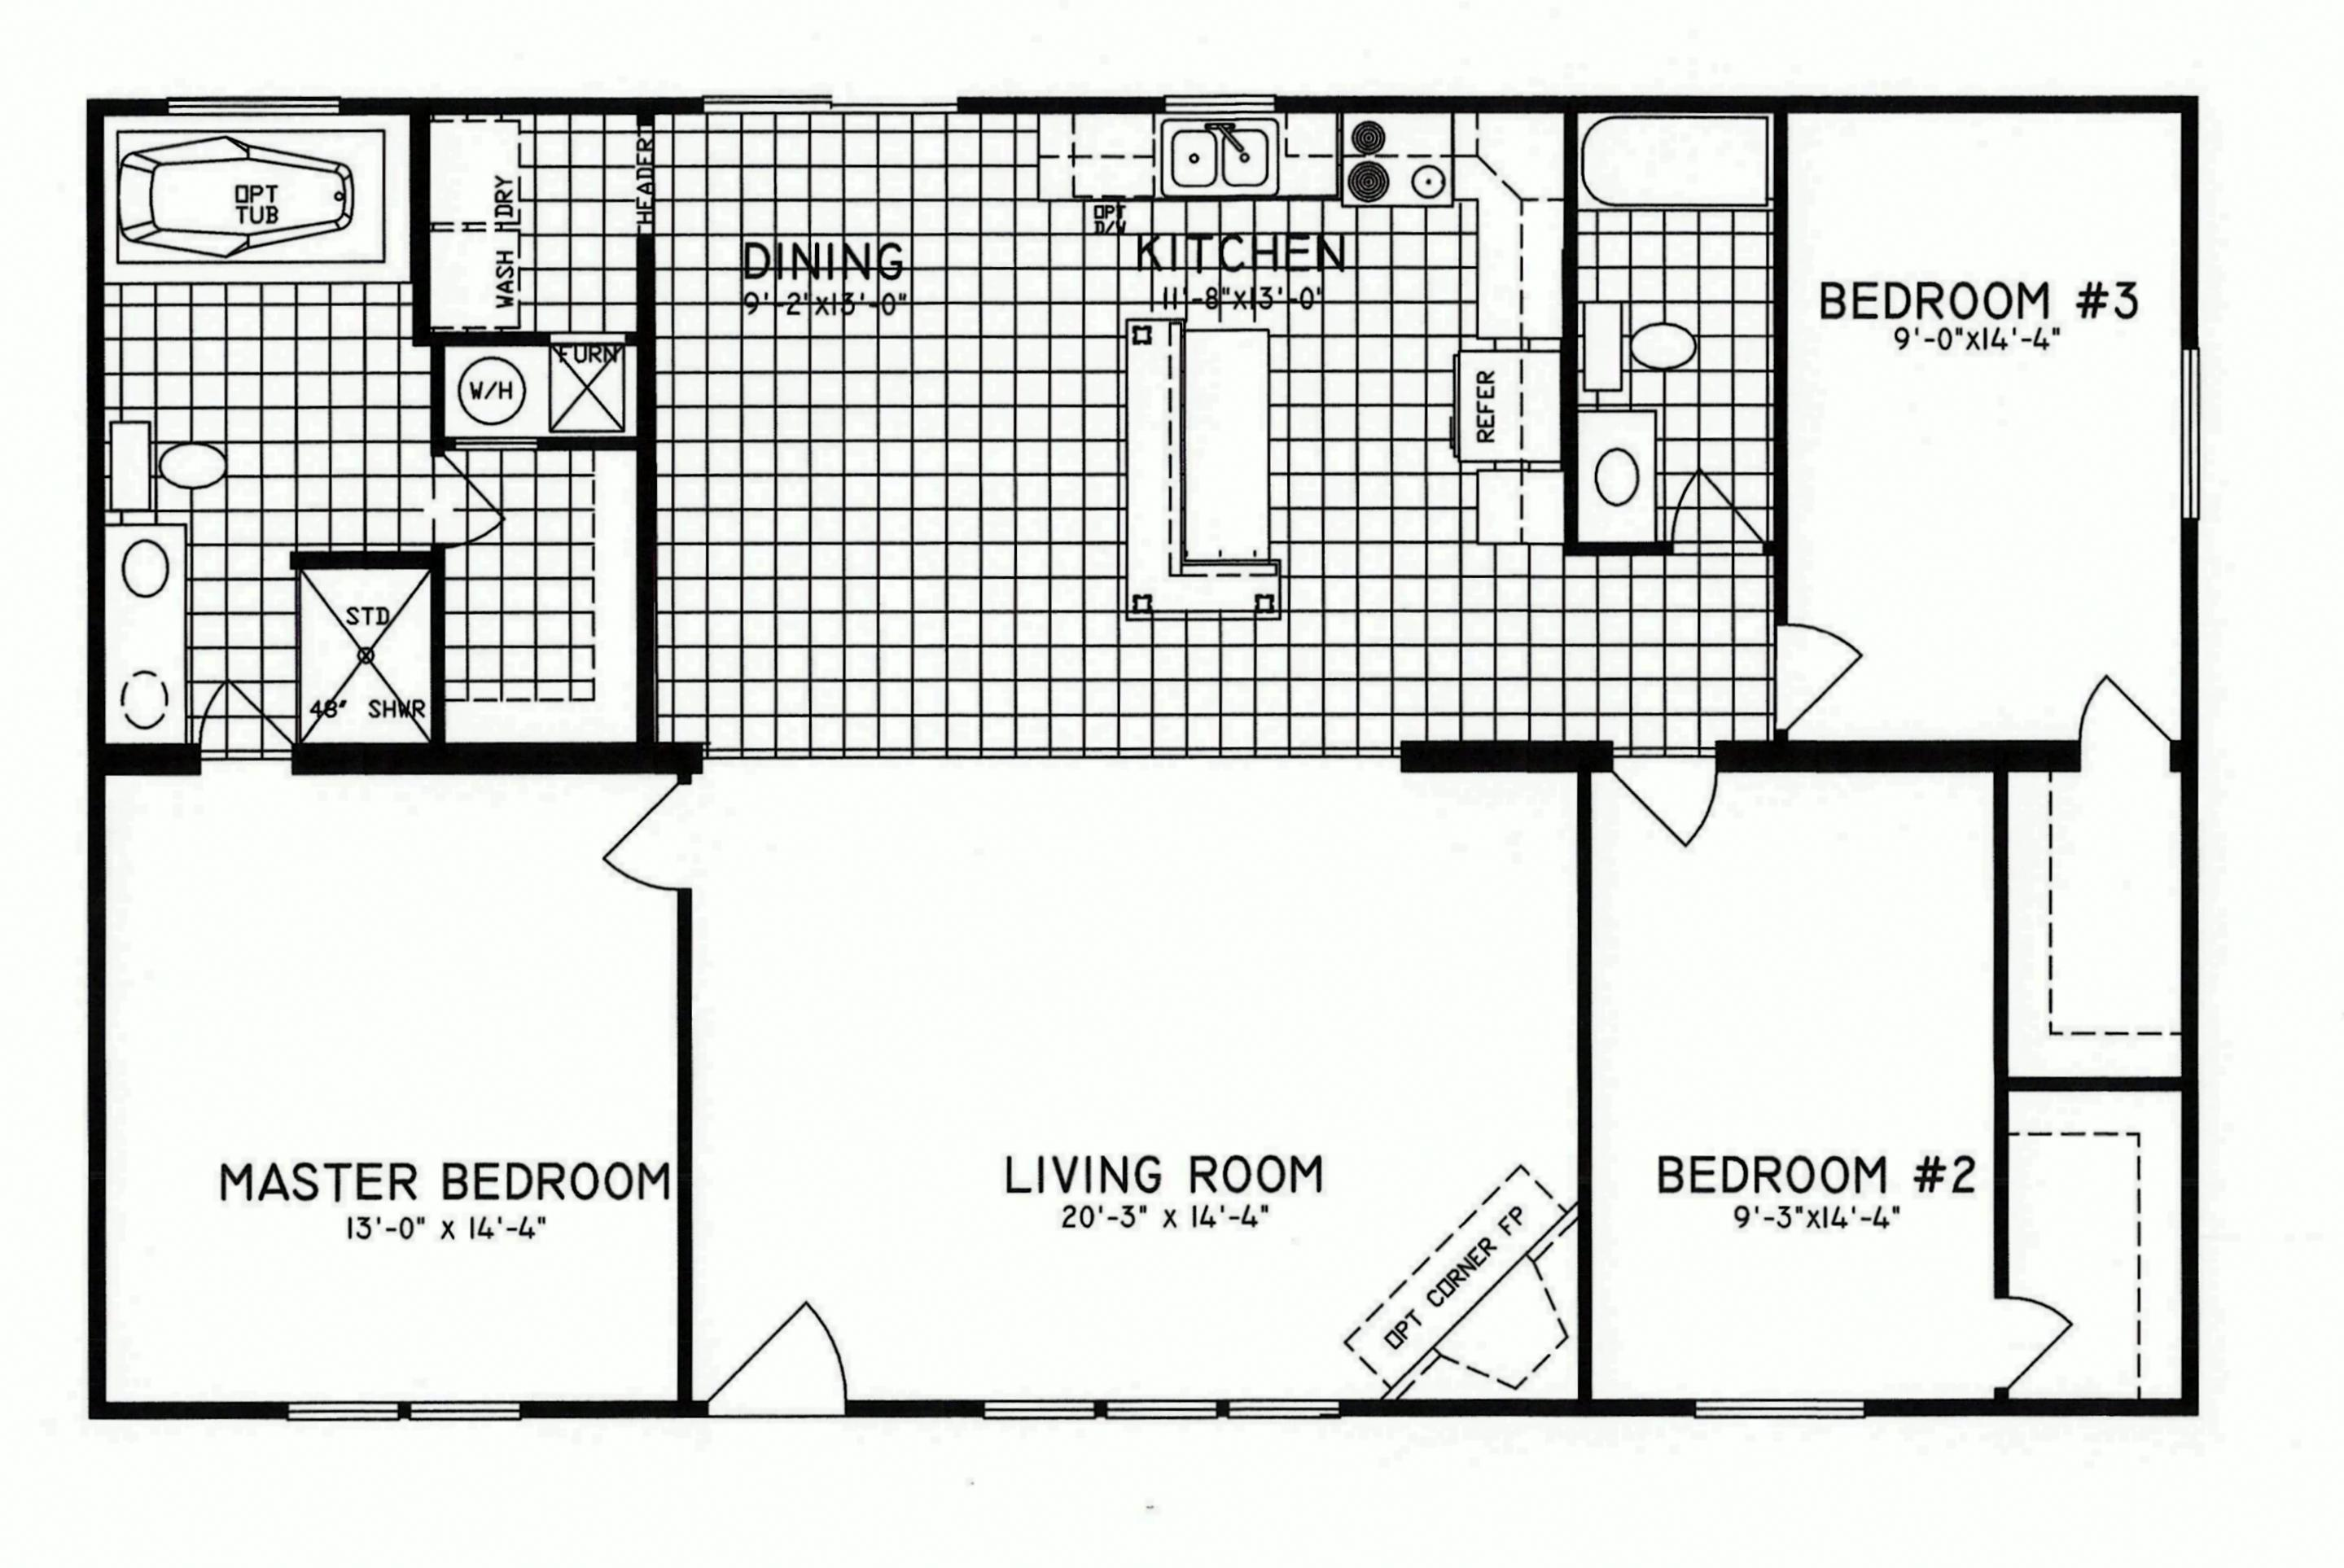 3 bedroom 2 bath modular home floor plans thefloors co for 2 bedroom mobile home floor plans